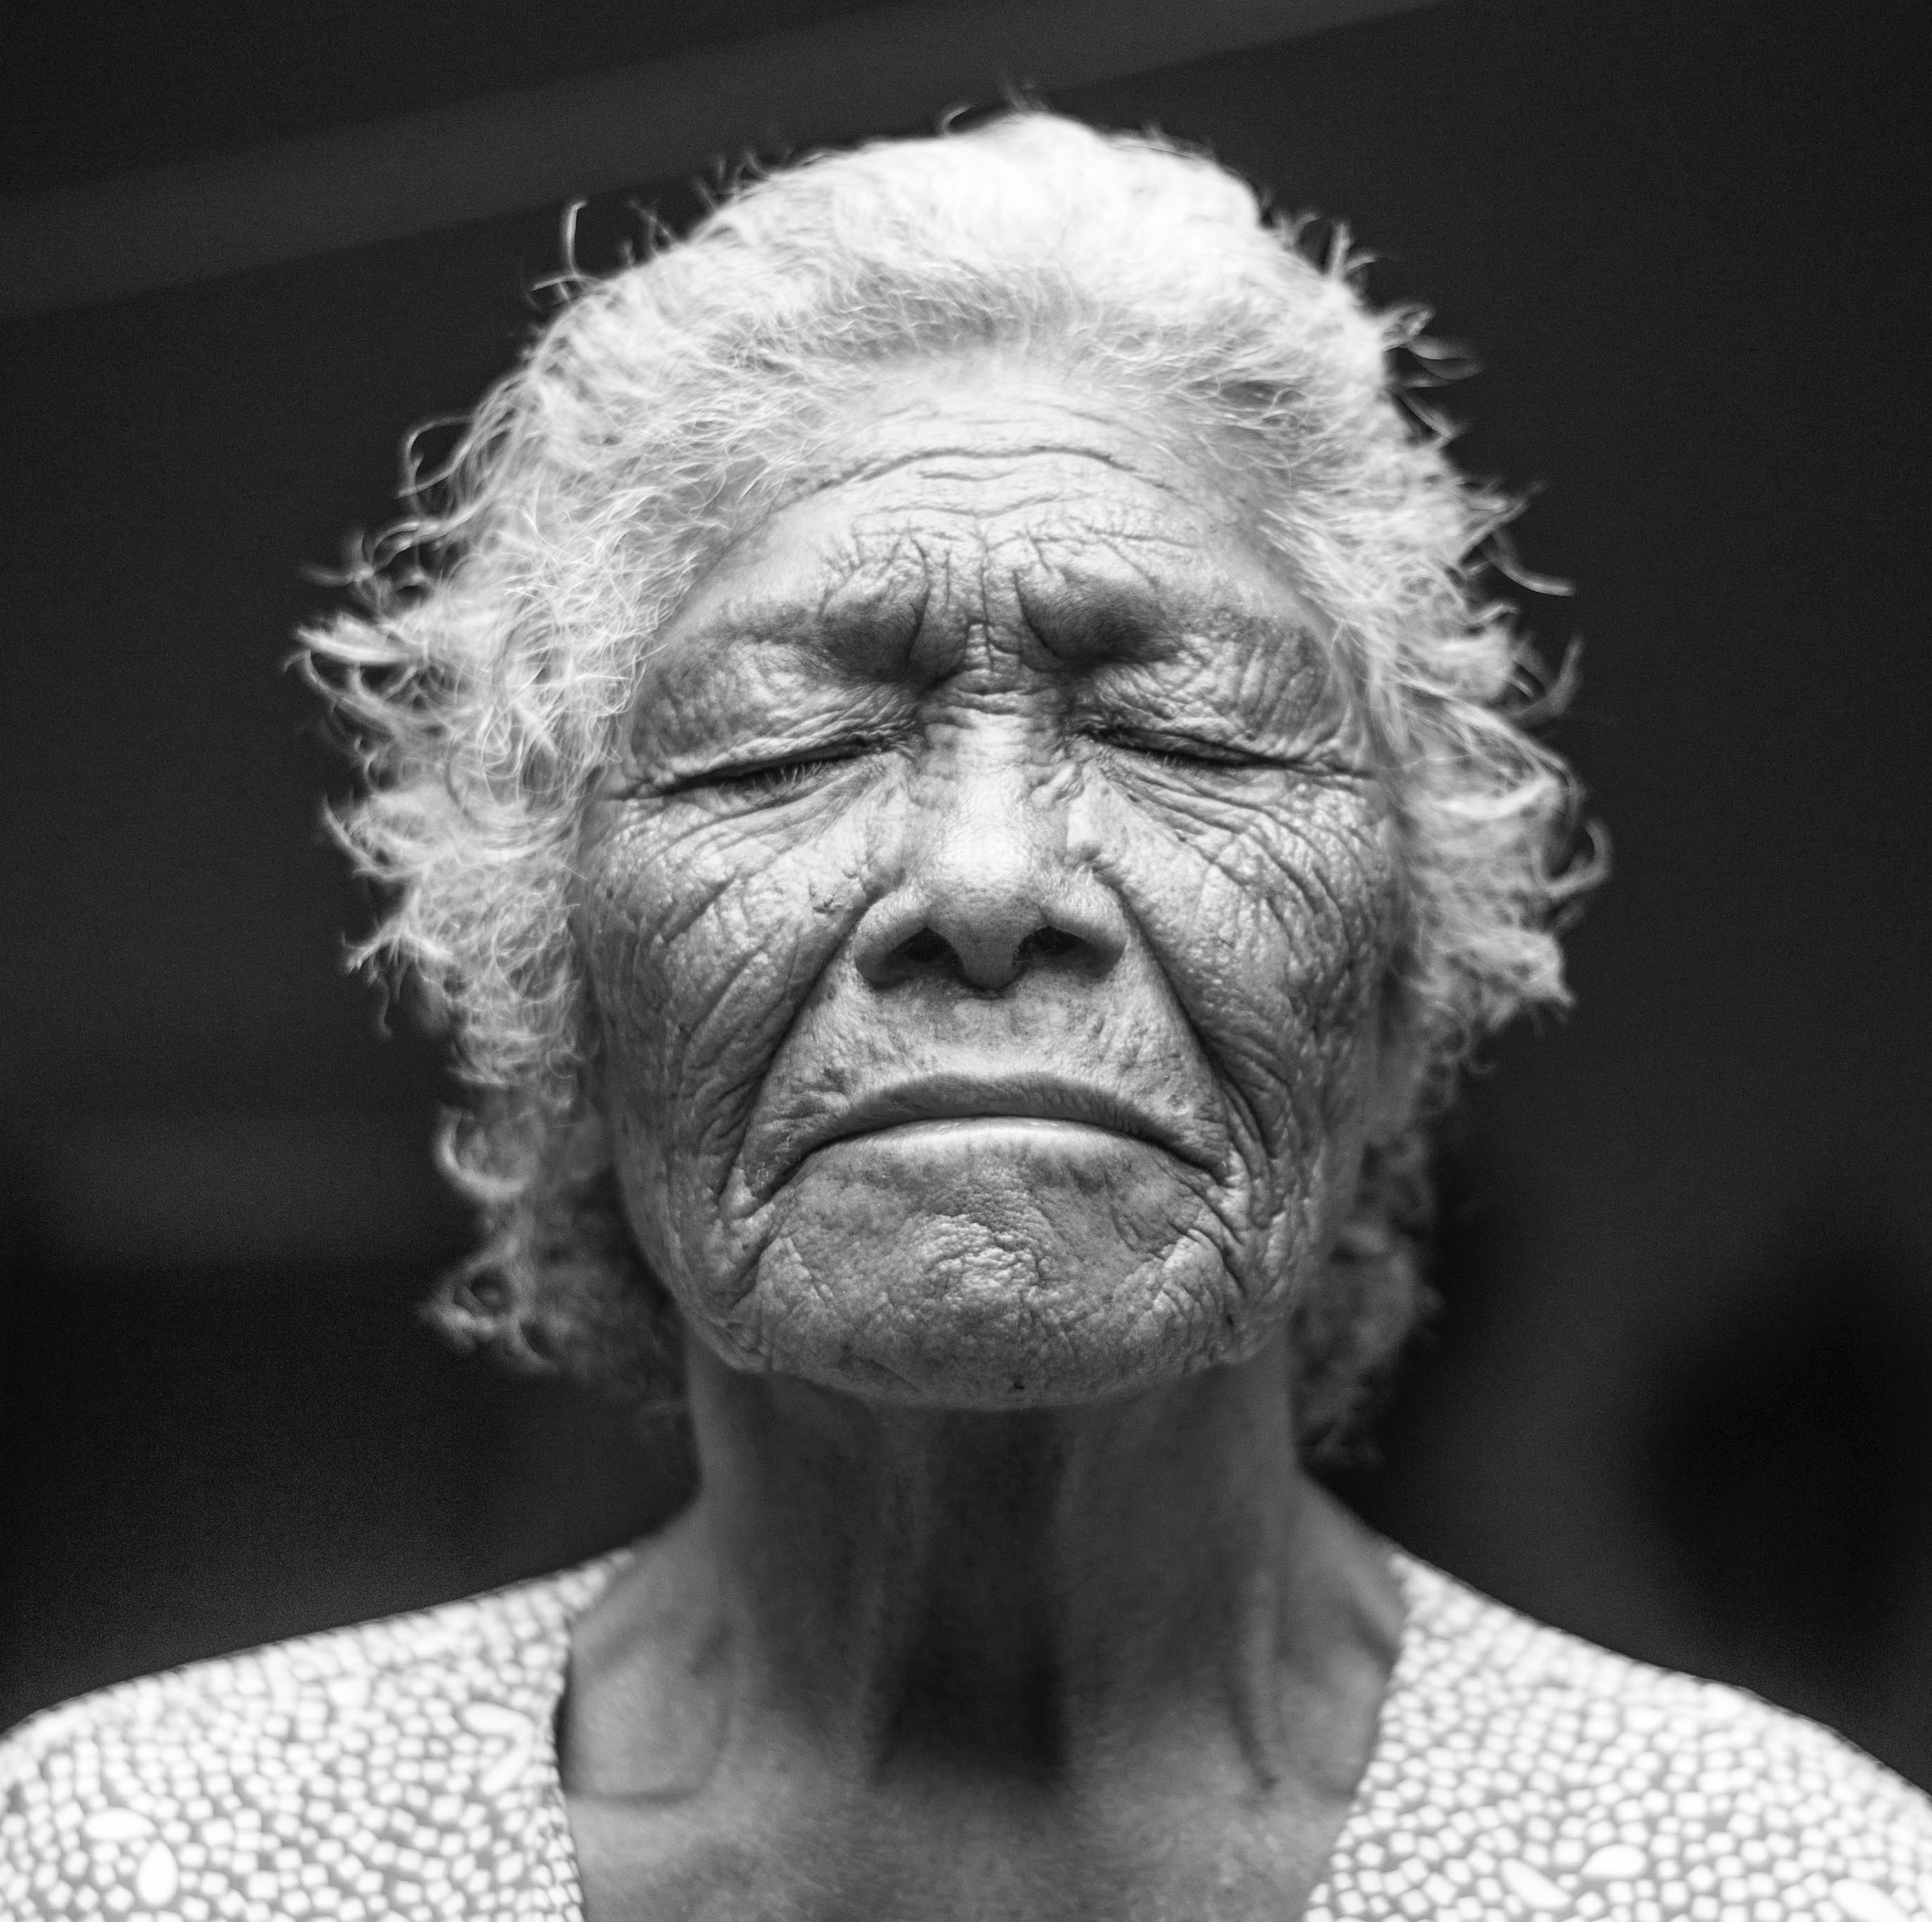 portrait of old grey haired lady